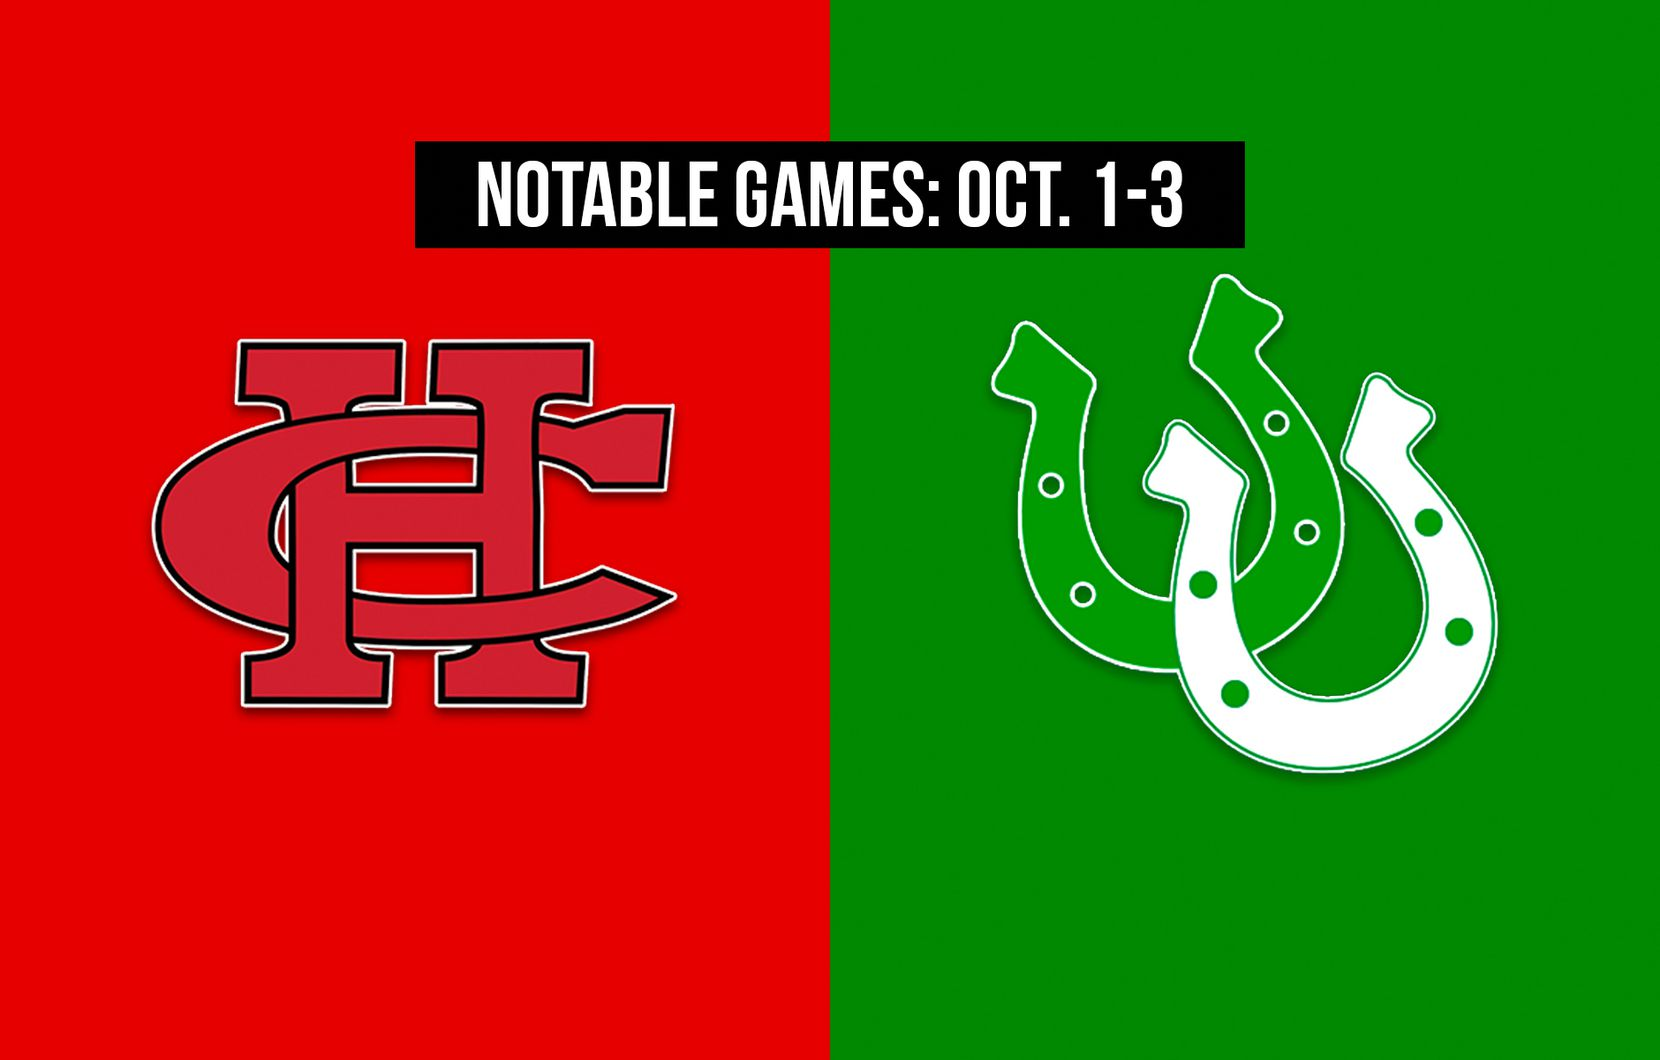 Notable games for the week of Oct. 1-3 of the 2020 season: Cedar Hill vs. Arlington.